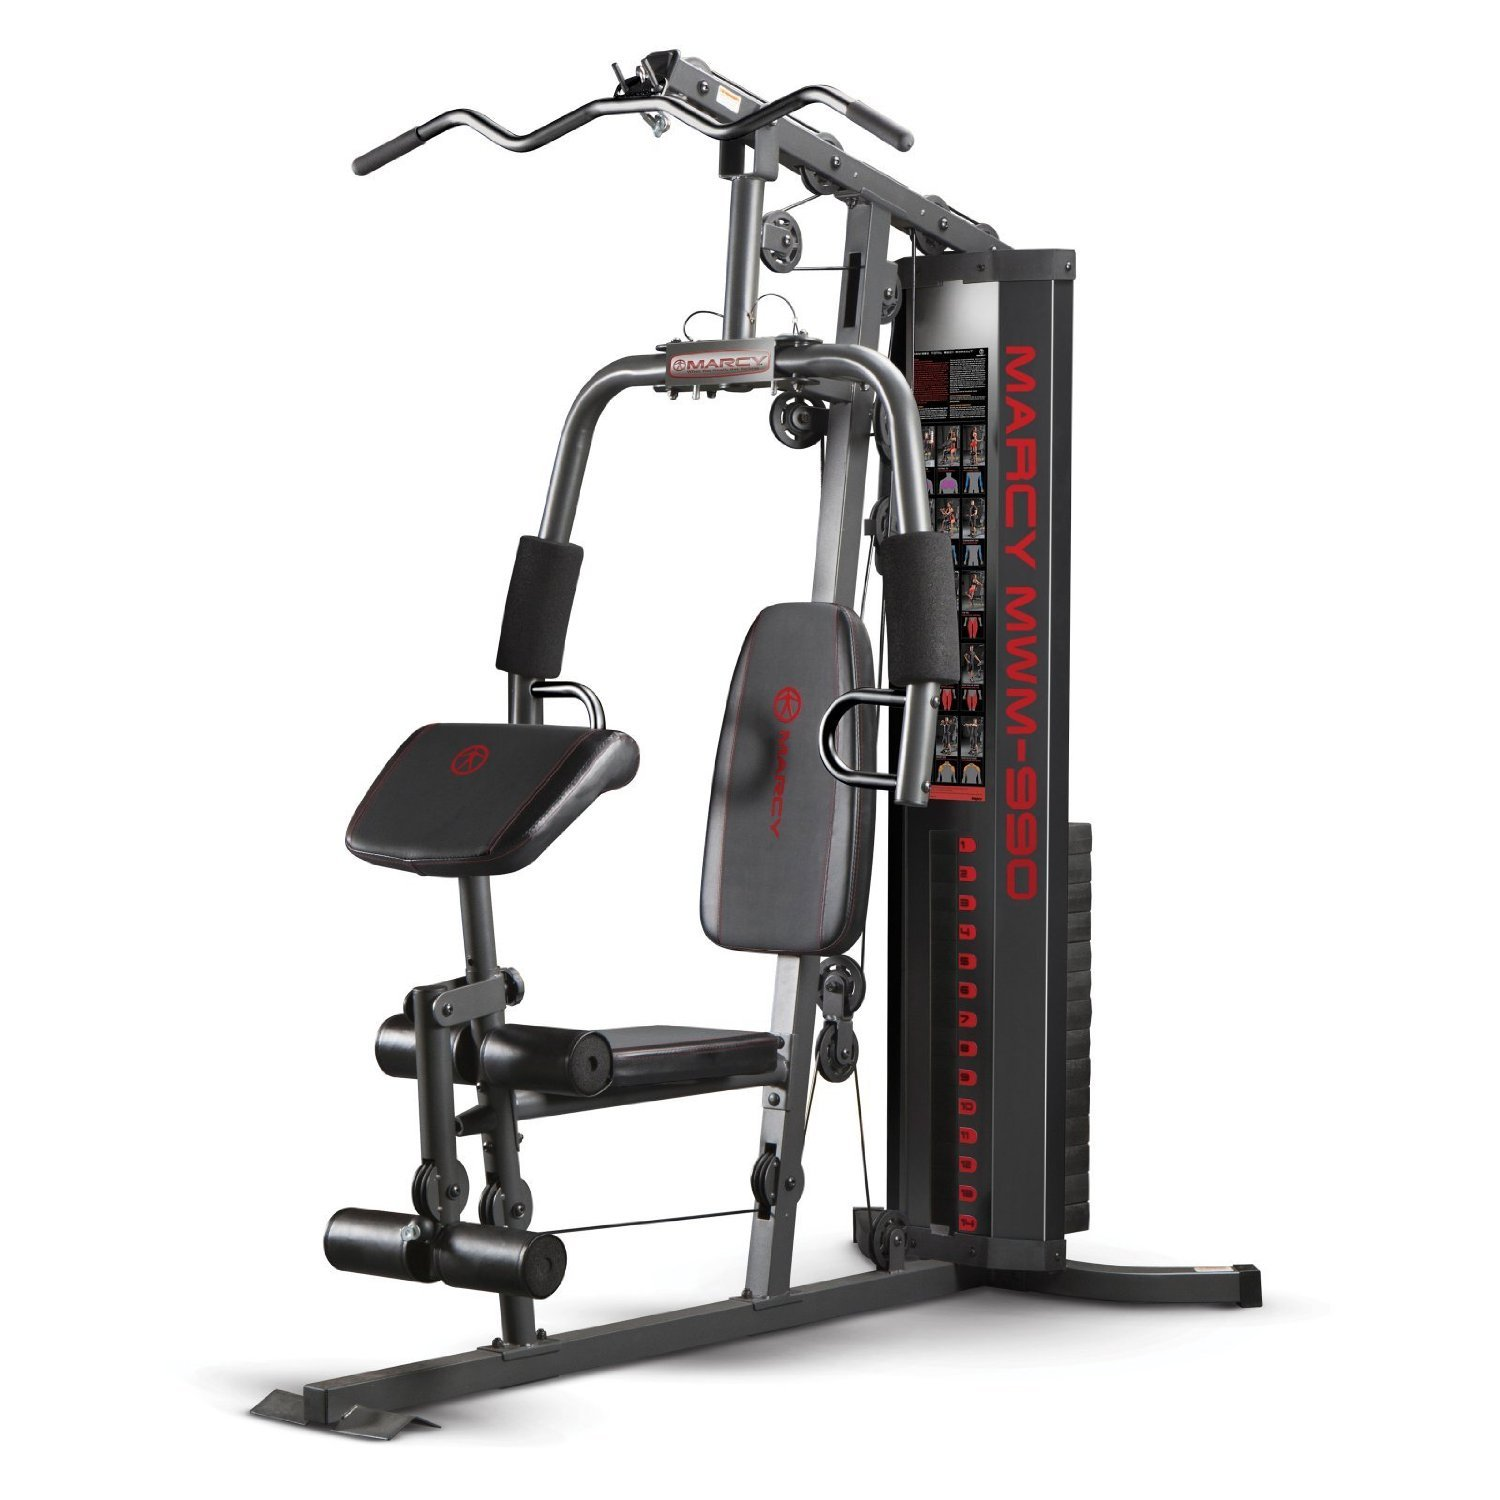 Marcy MWM-990 Home Gym